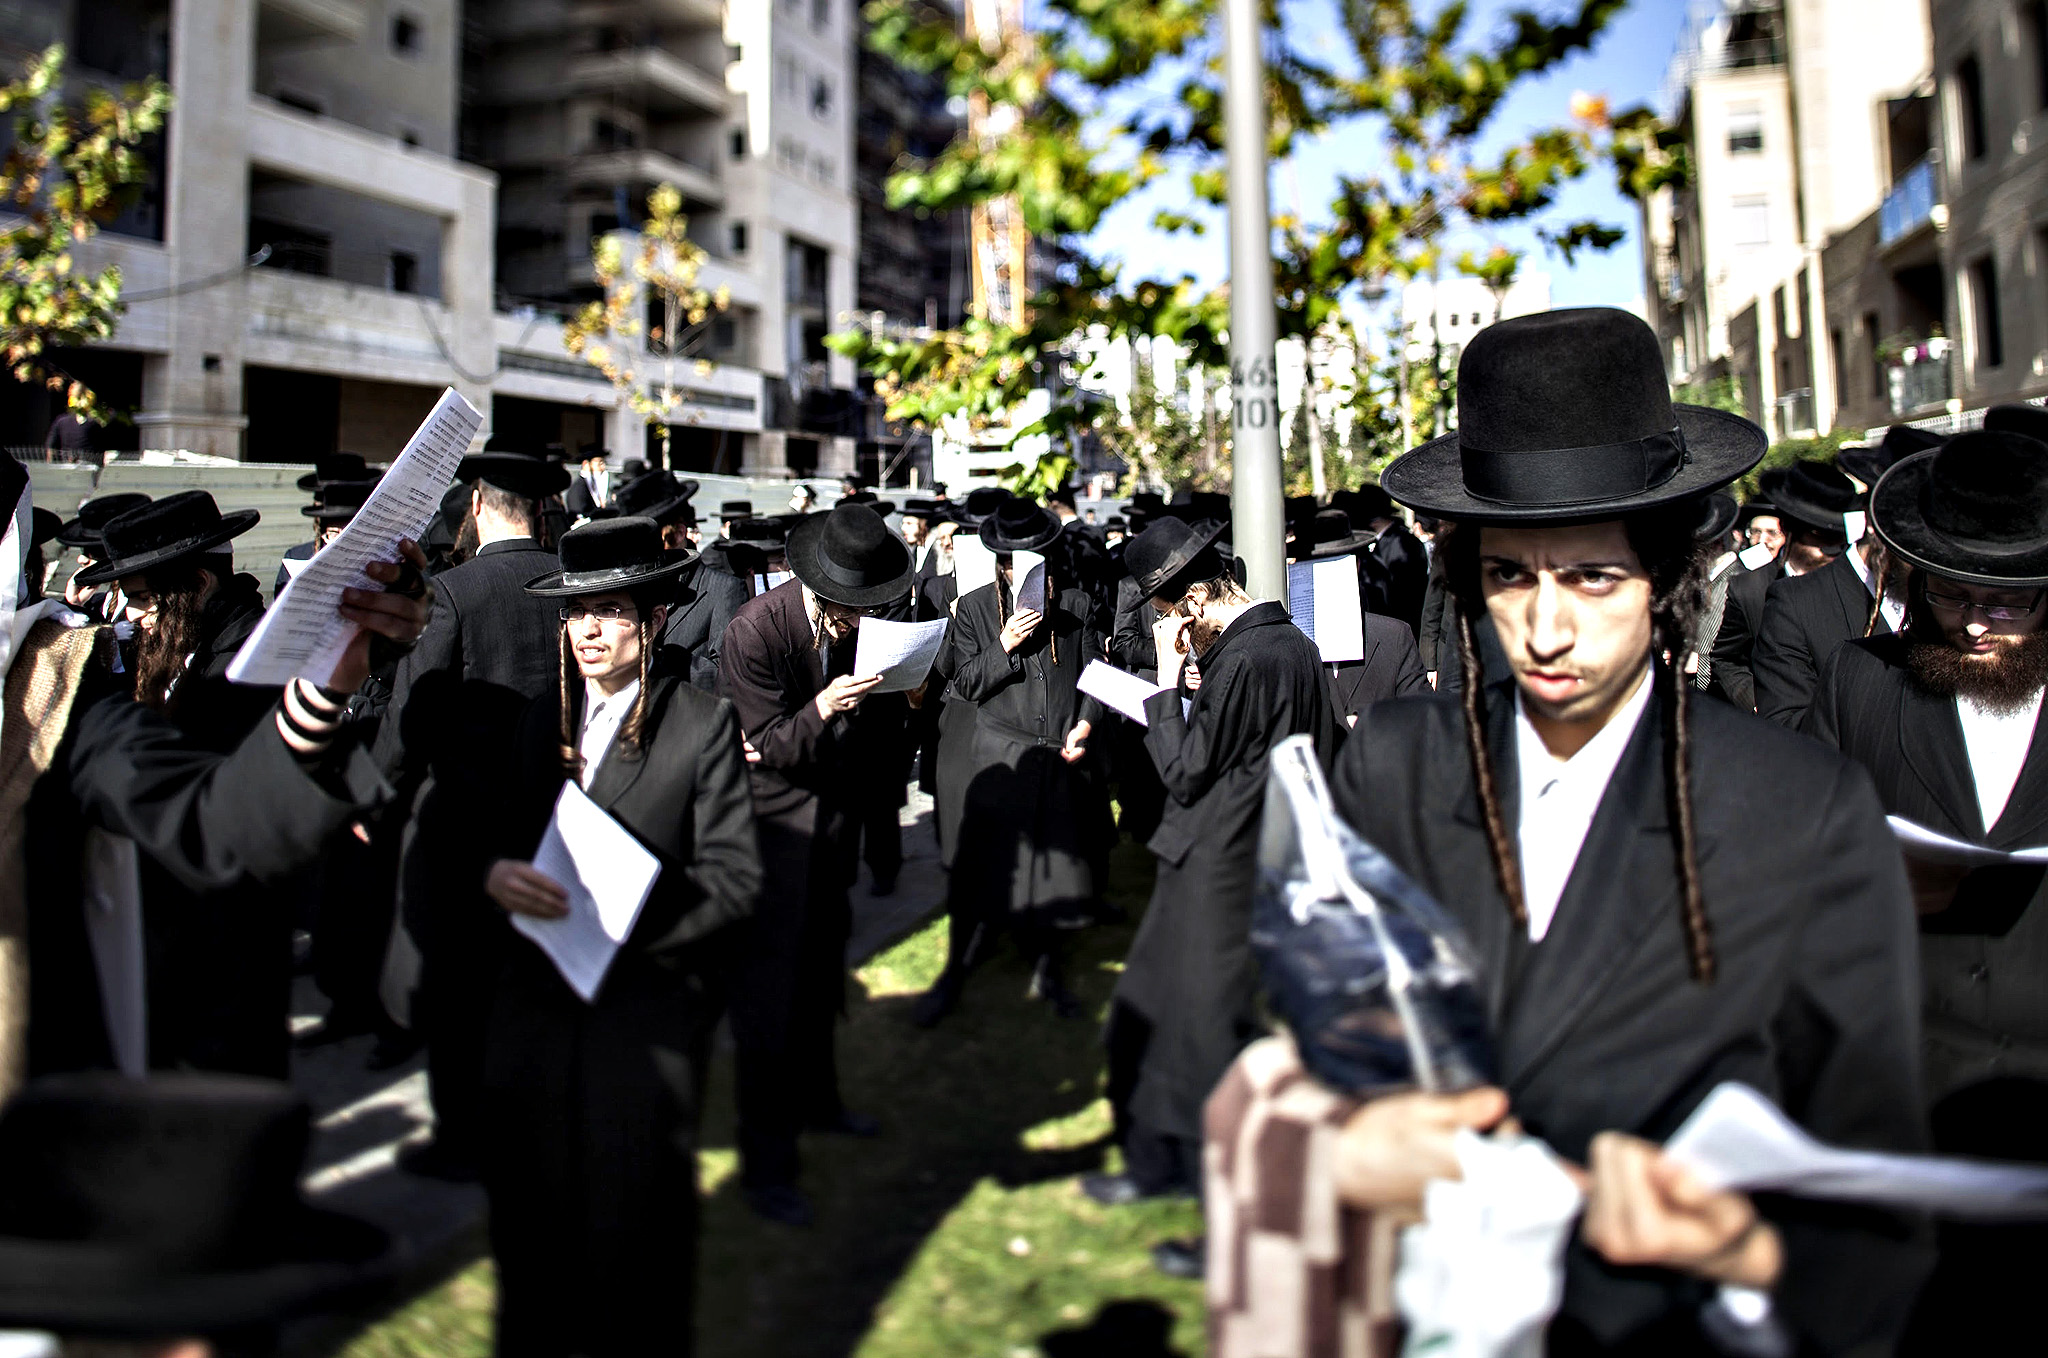 Israeli Orthodox jews seen protesting on December 10, 2014 in Jerusalem, Israel. Orthodox jews are protesting the building of a new neighbourhood in Jerusalem, because of fears it will destroy an ancient Jewish tomb at the site.